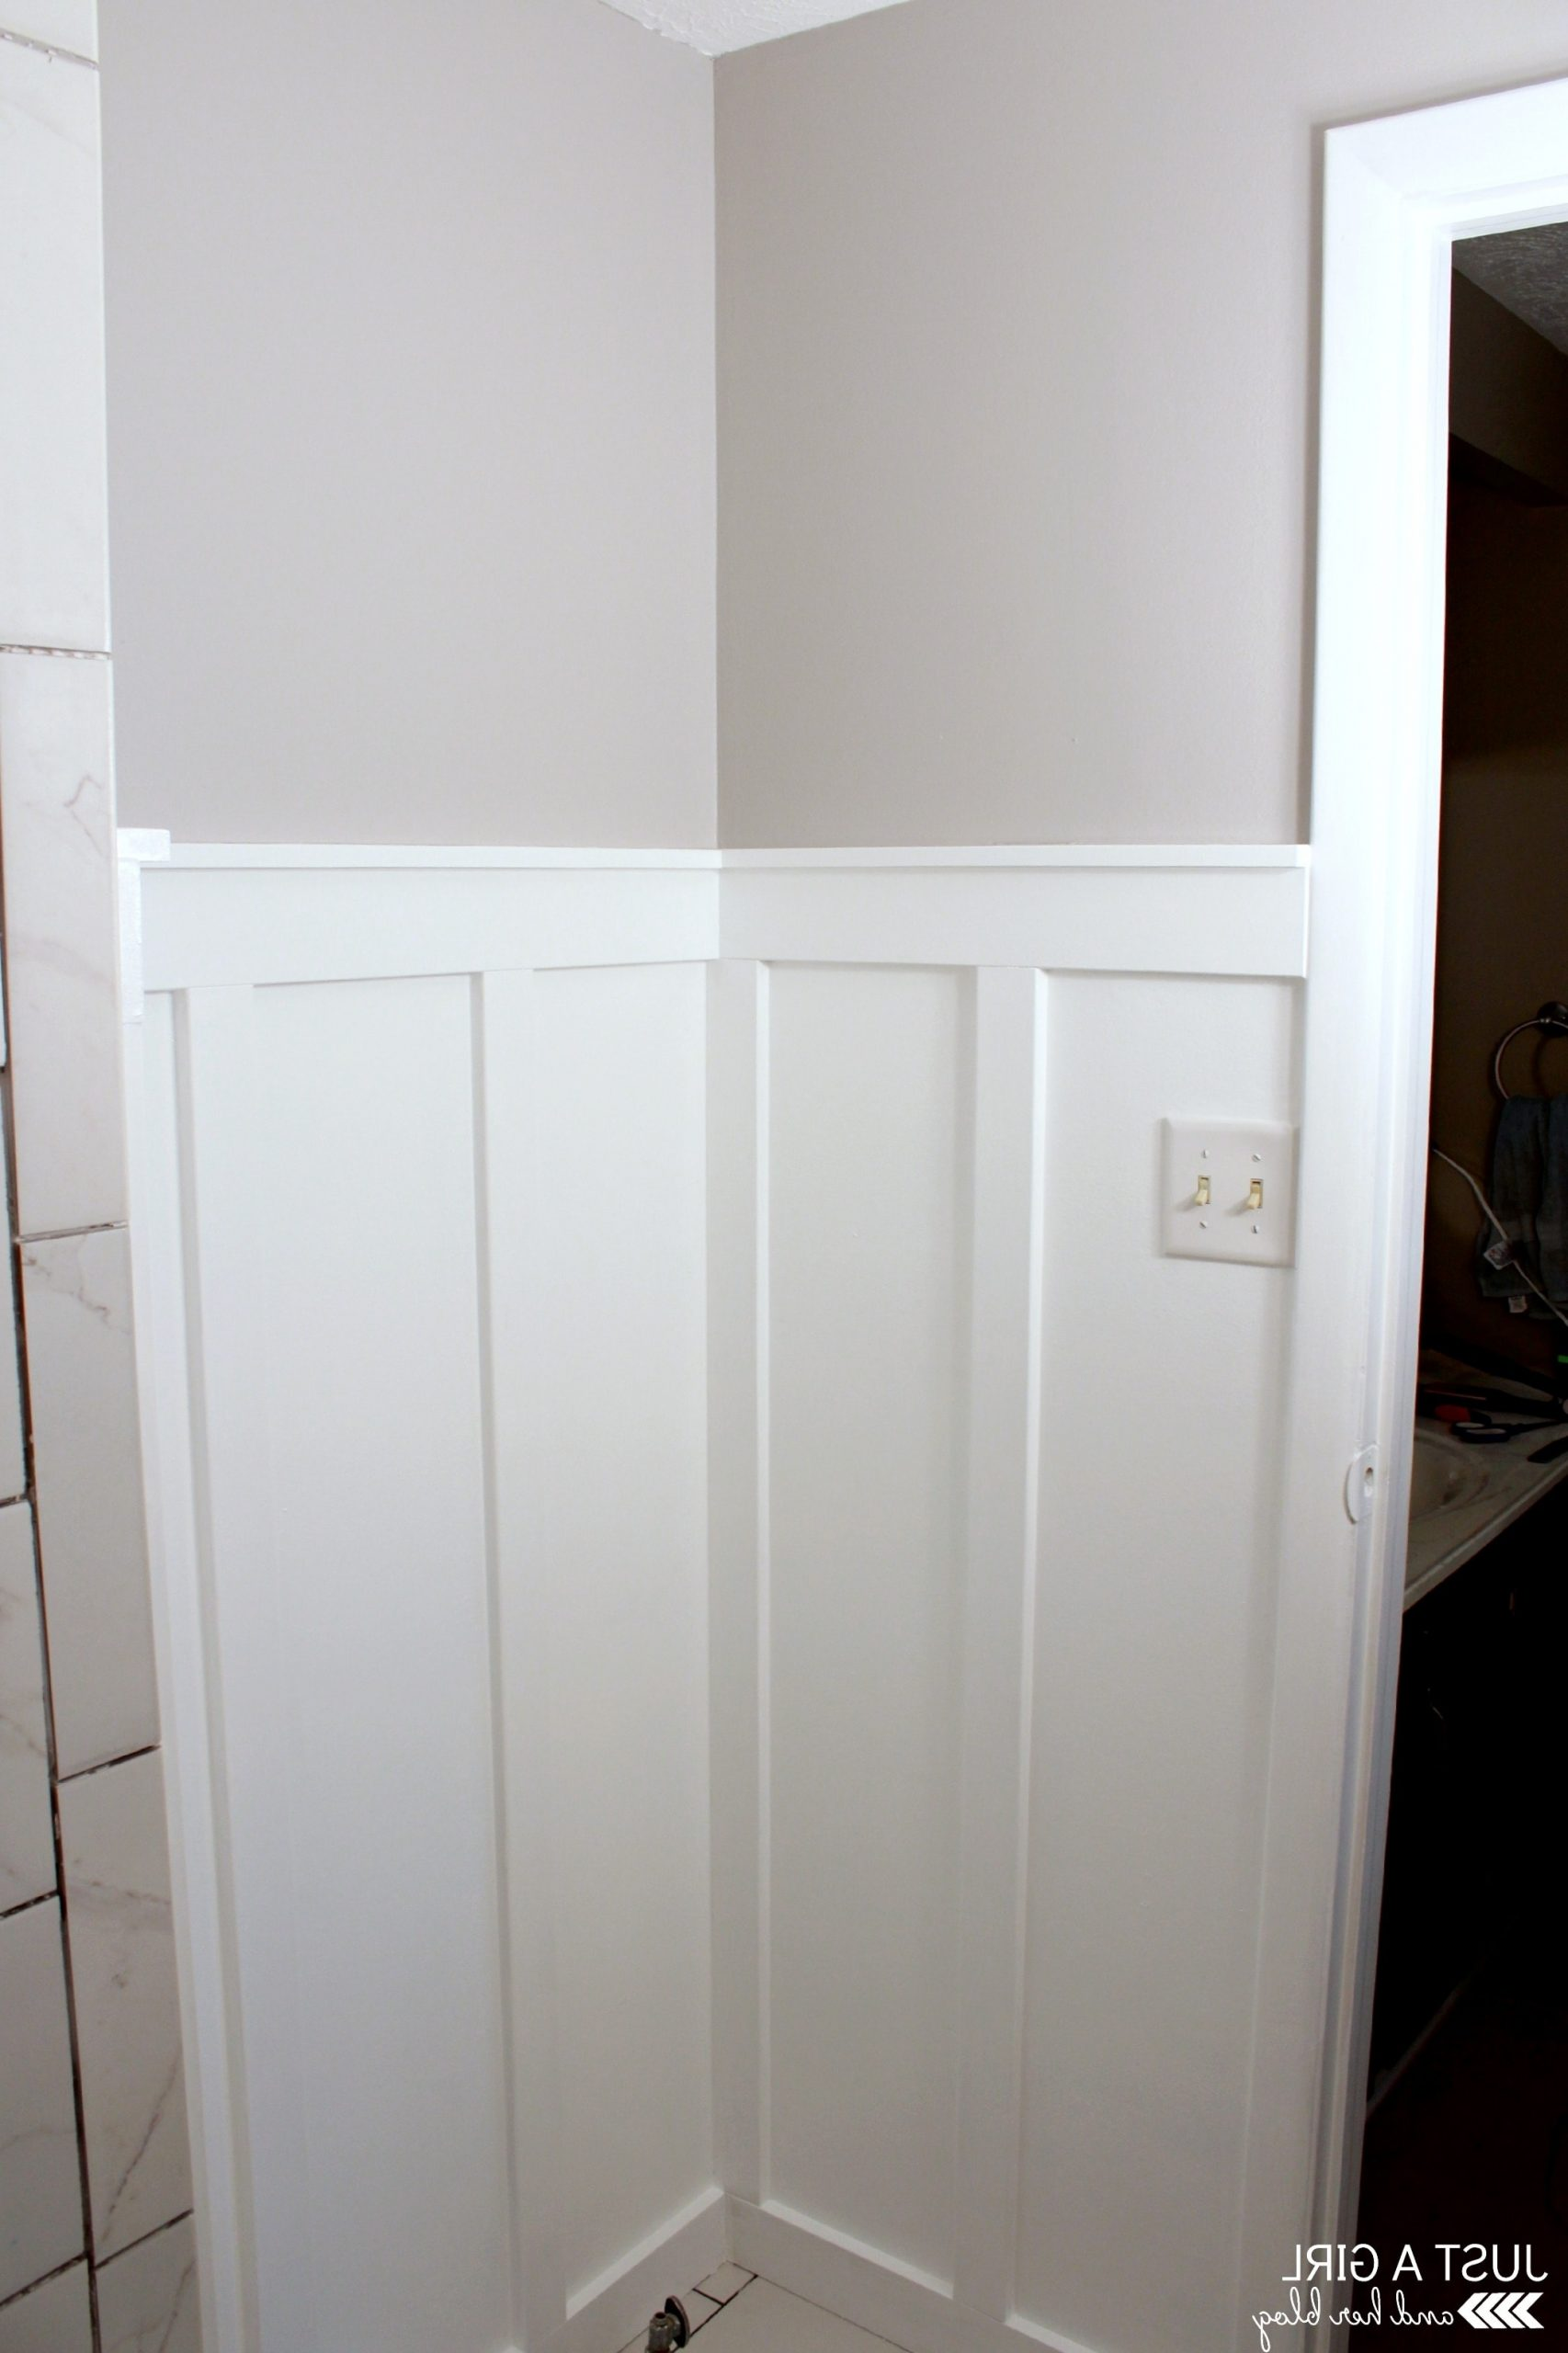 How To Install Board And Batten In A Small Space {Master 10+ Board And Batten In Small Bathroom Ideas